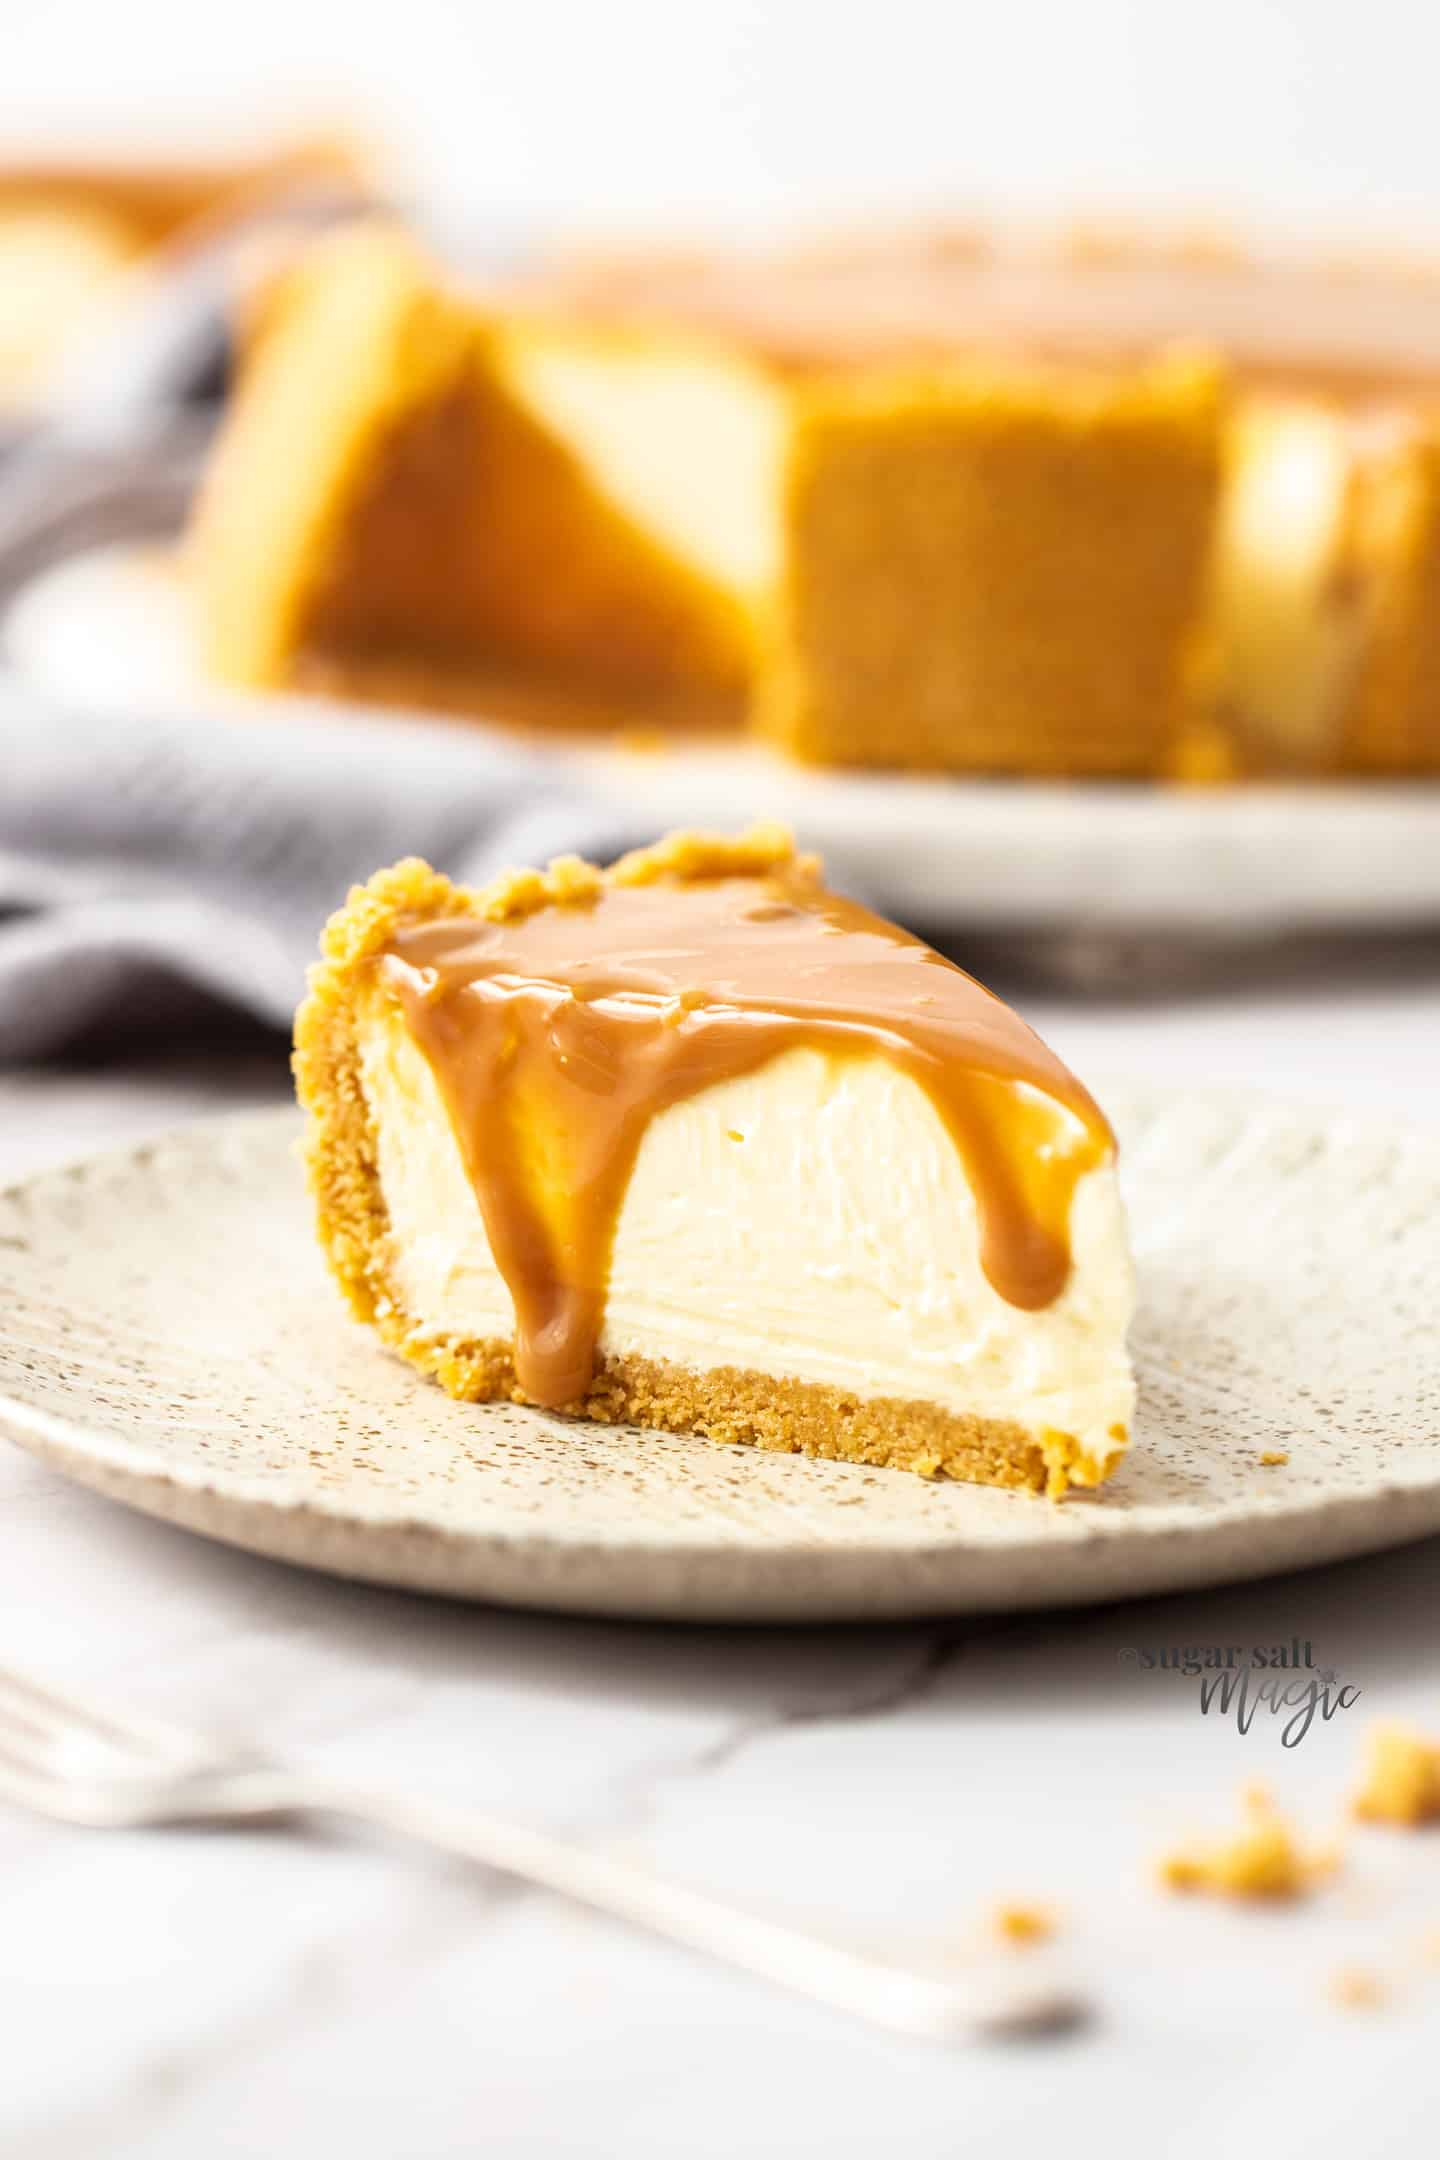 A slice of cheesecake with dulce de leche drippig down the side on a small plate.